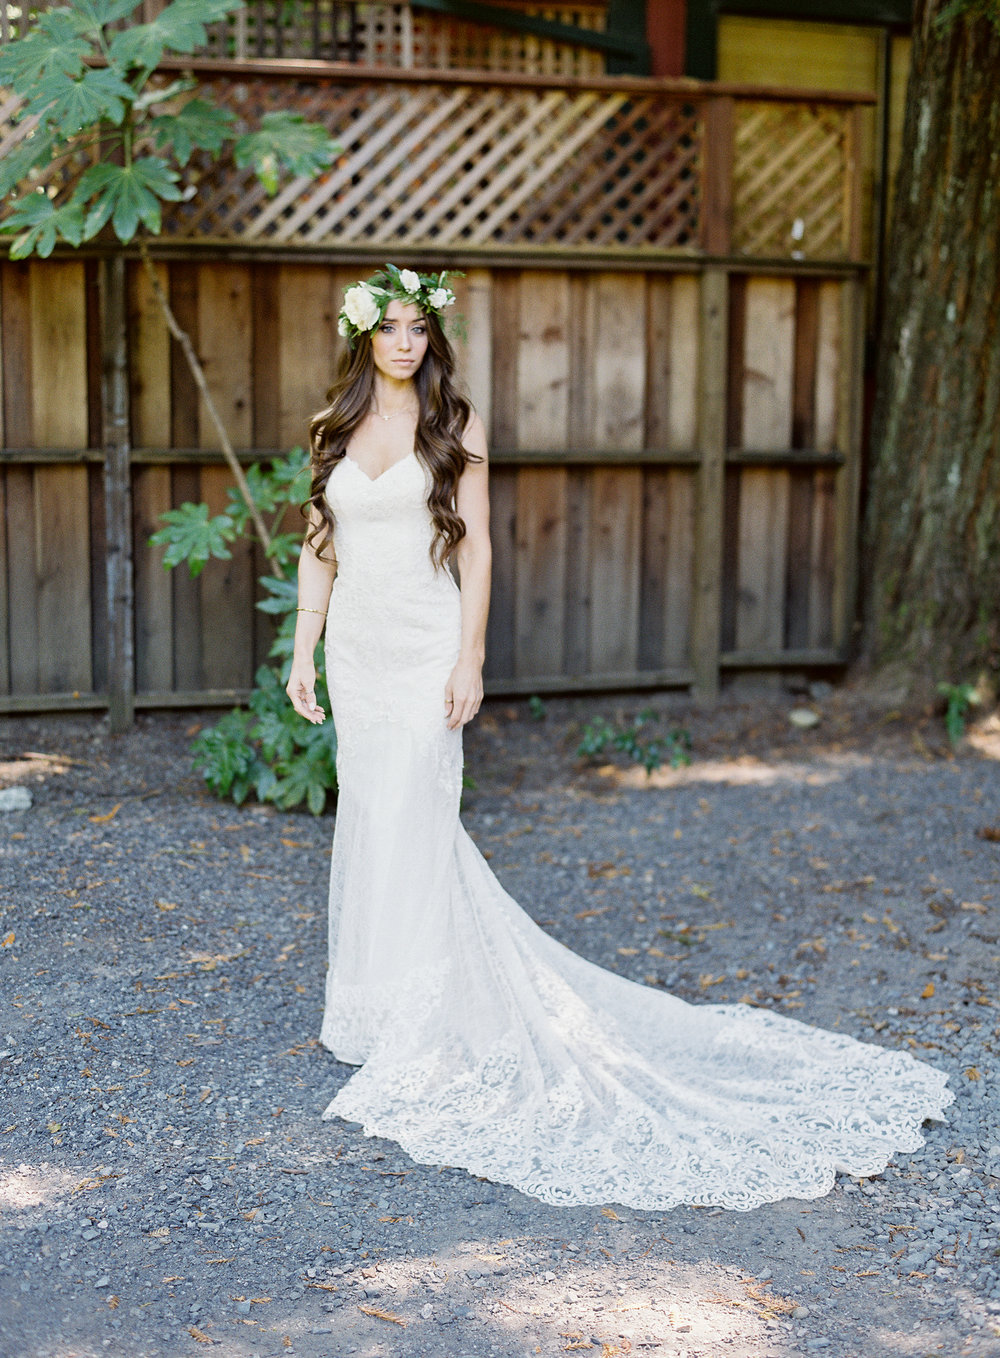 Meghan Mehan Photography | California Wedding Photographer | Napa California Wedding Photographer 064.jpg